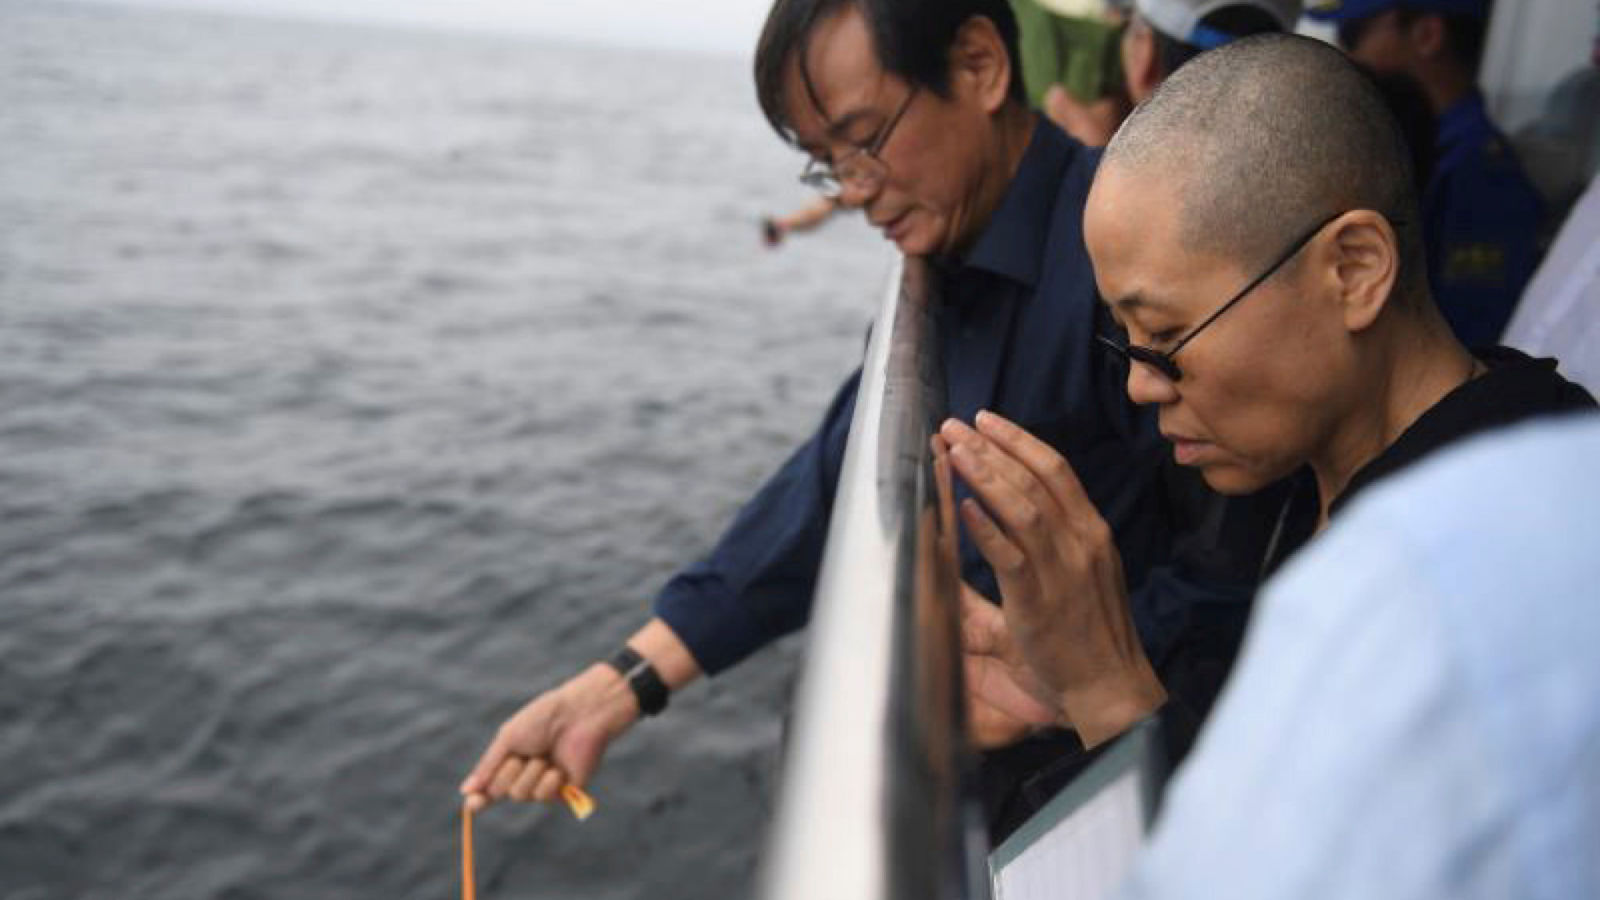 Liu Xia, wife of deceased Chinese Nobel Peace Prize-winning dissident Liu Xiaobo and other relatives attend his sea burial off the coast of Dalian, China in this photo released by Shenyang Municipal Information Office on July 15, 2017.